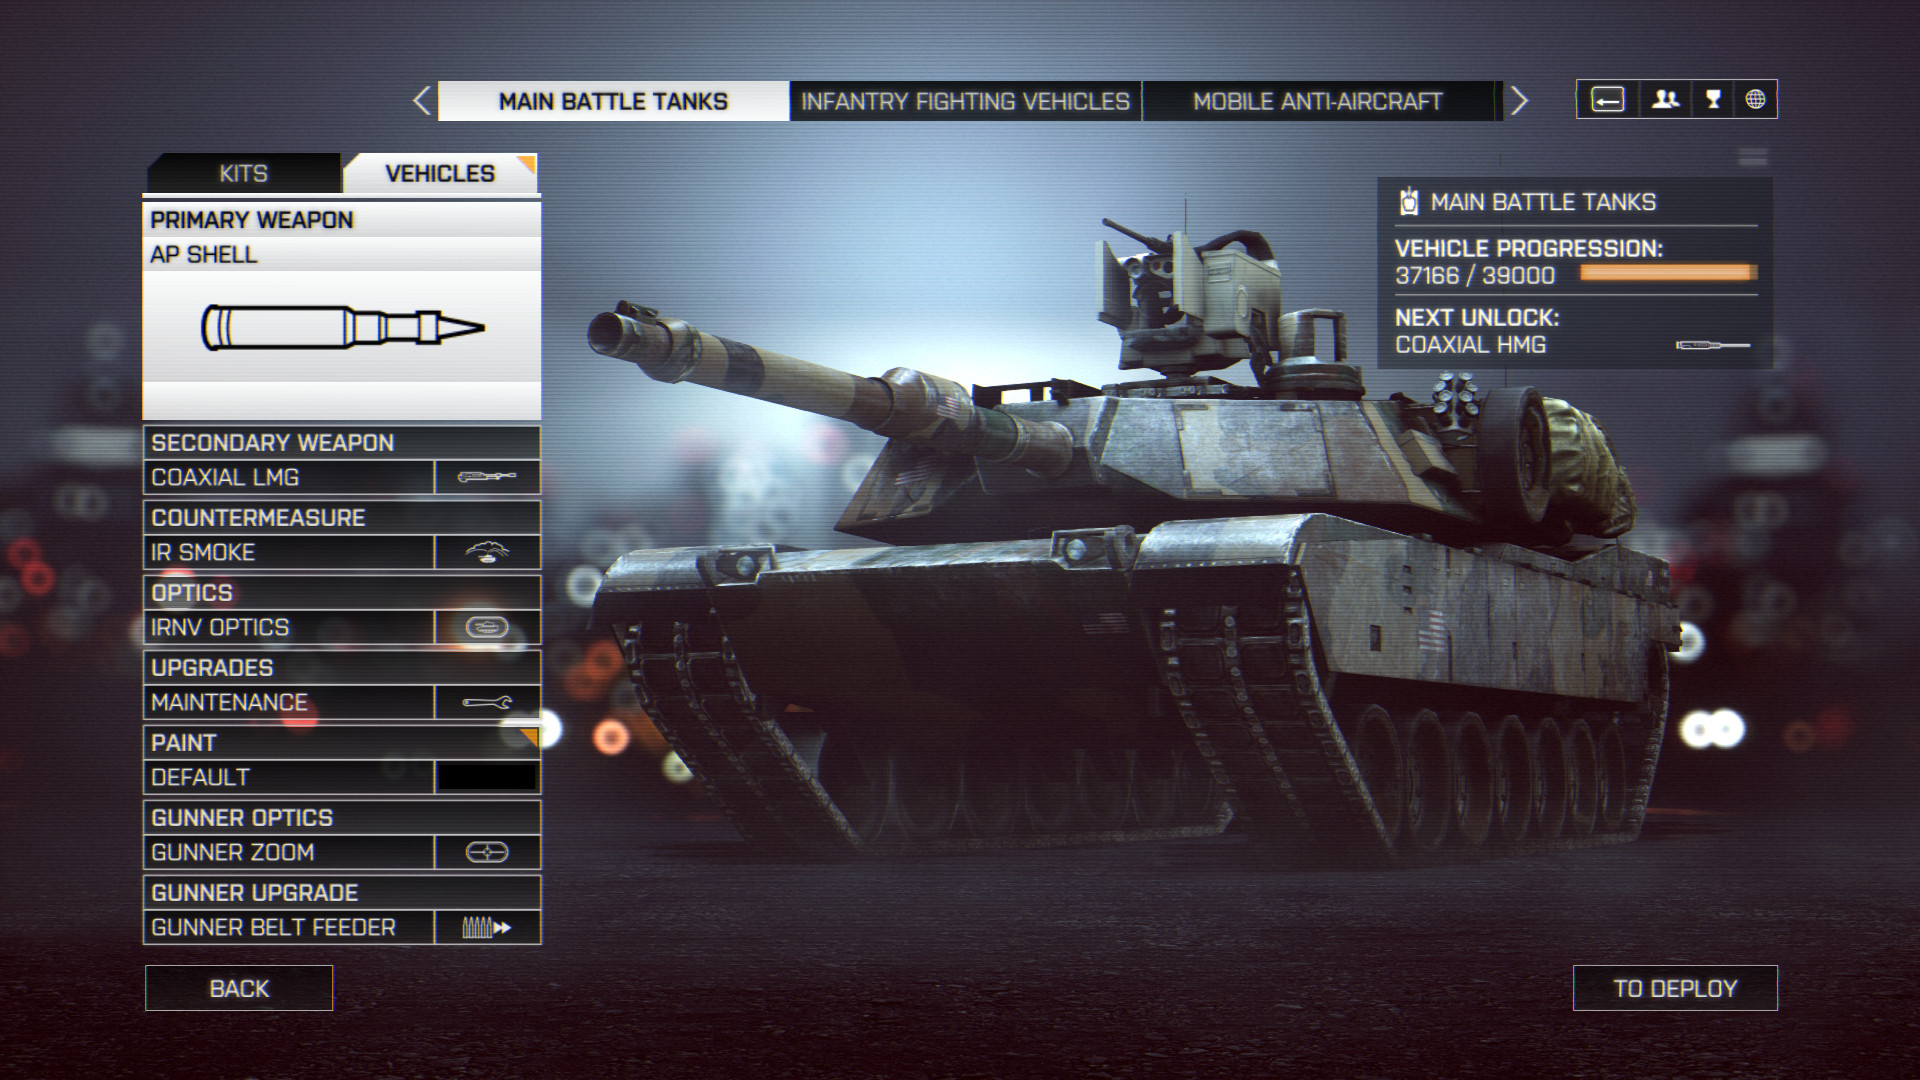 Battlefield 4 Customize vehicle